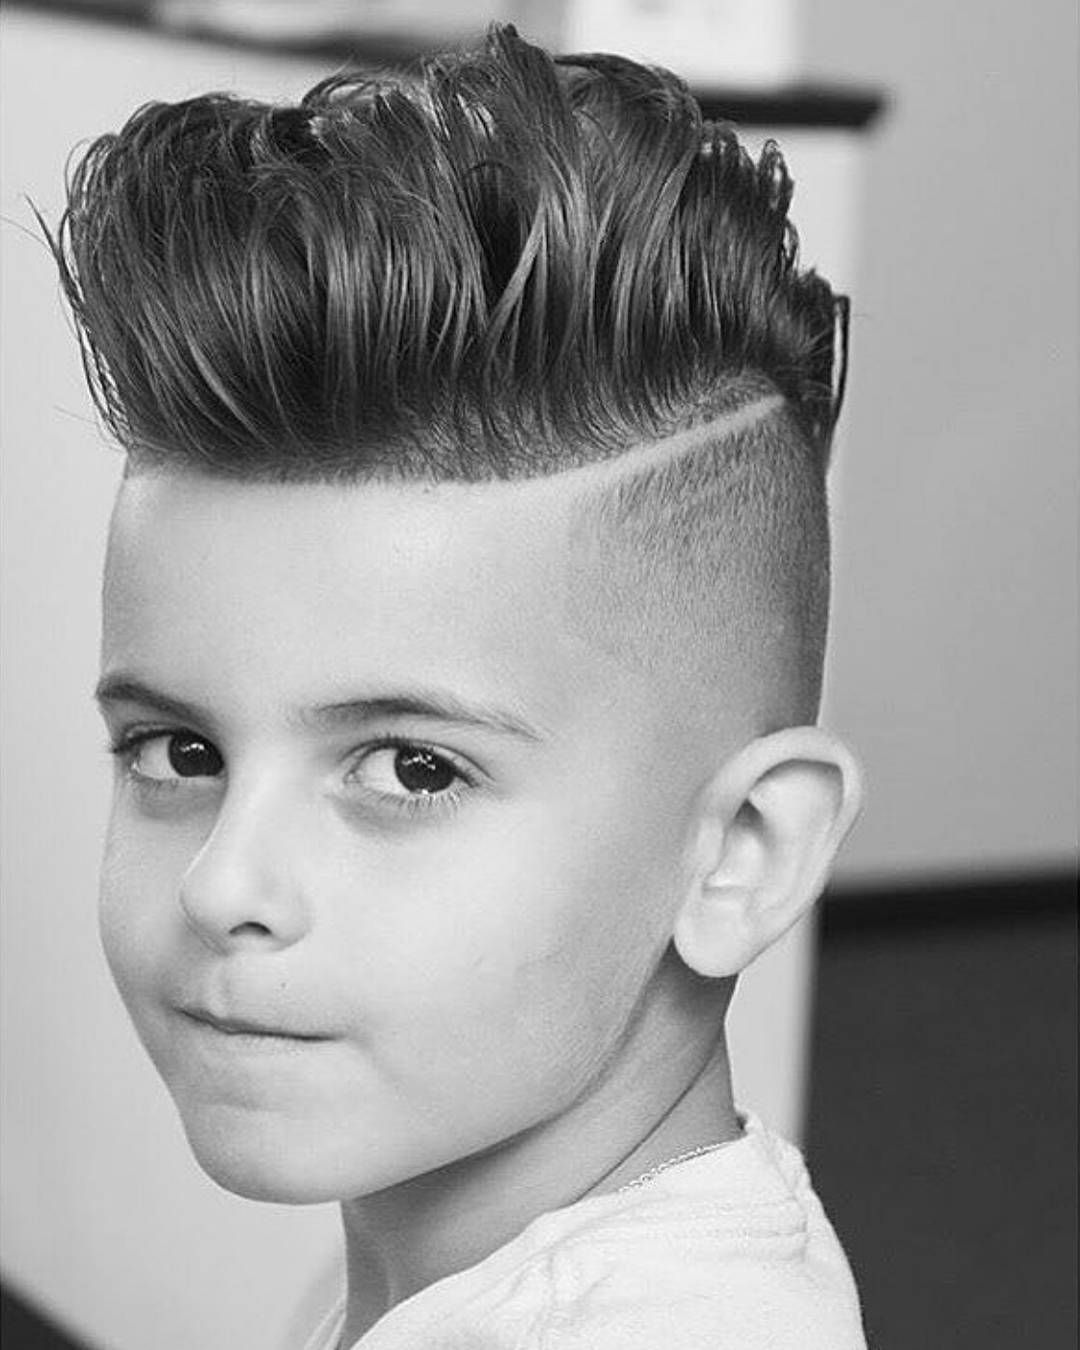 pin by nat richards on hair | boy hairstyles, cool boys